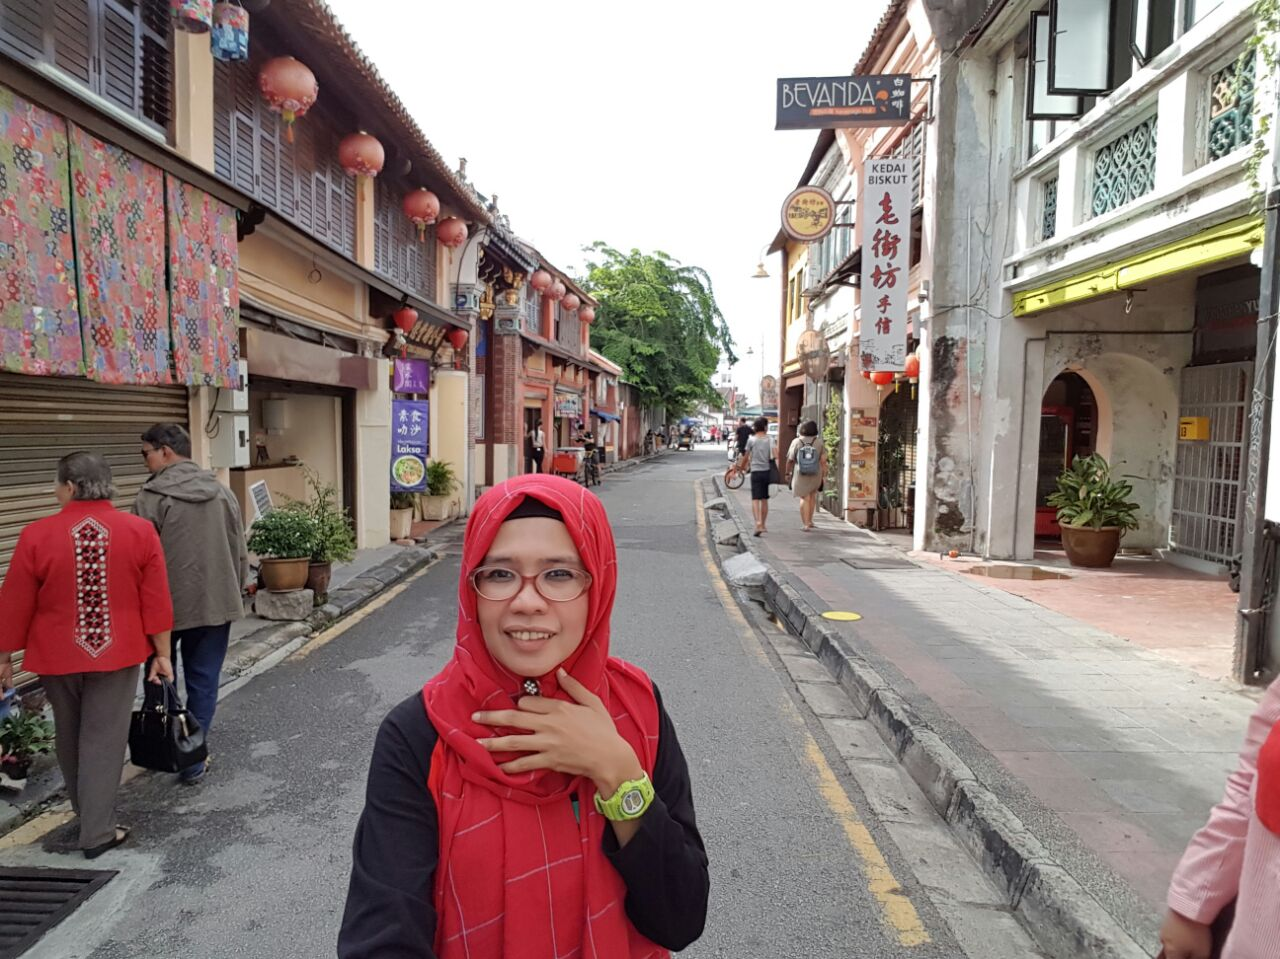 Bertandang ke Penang: A Weekend Gateway